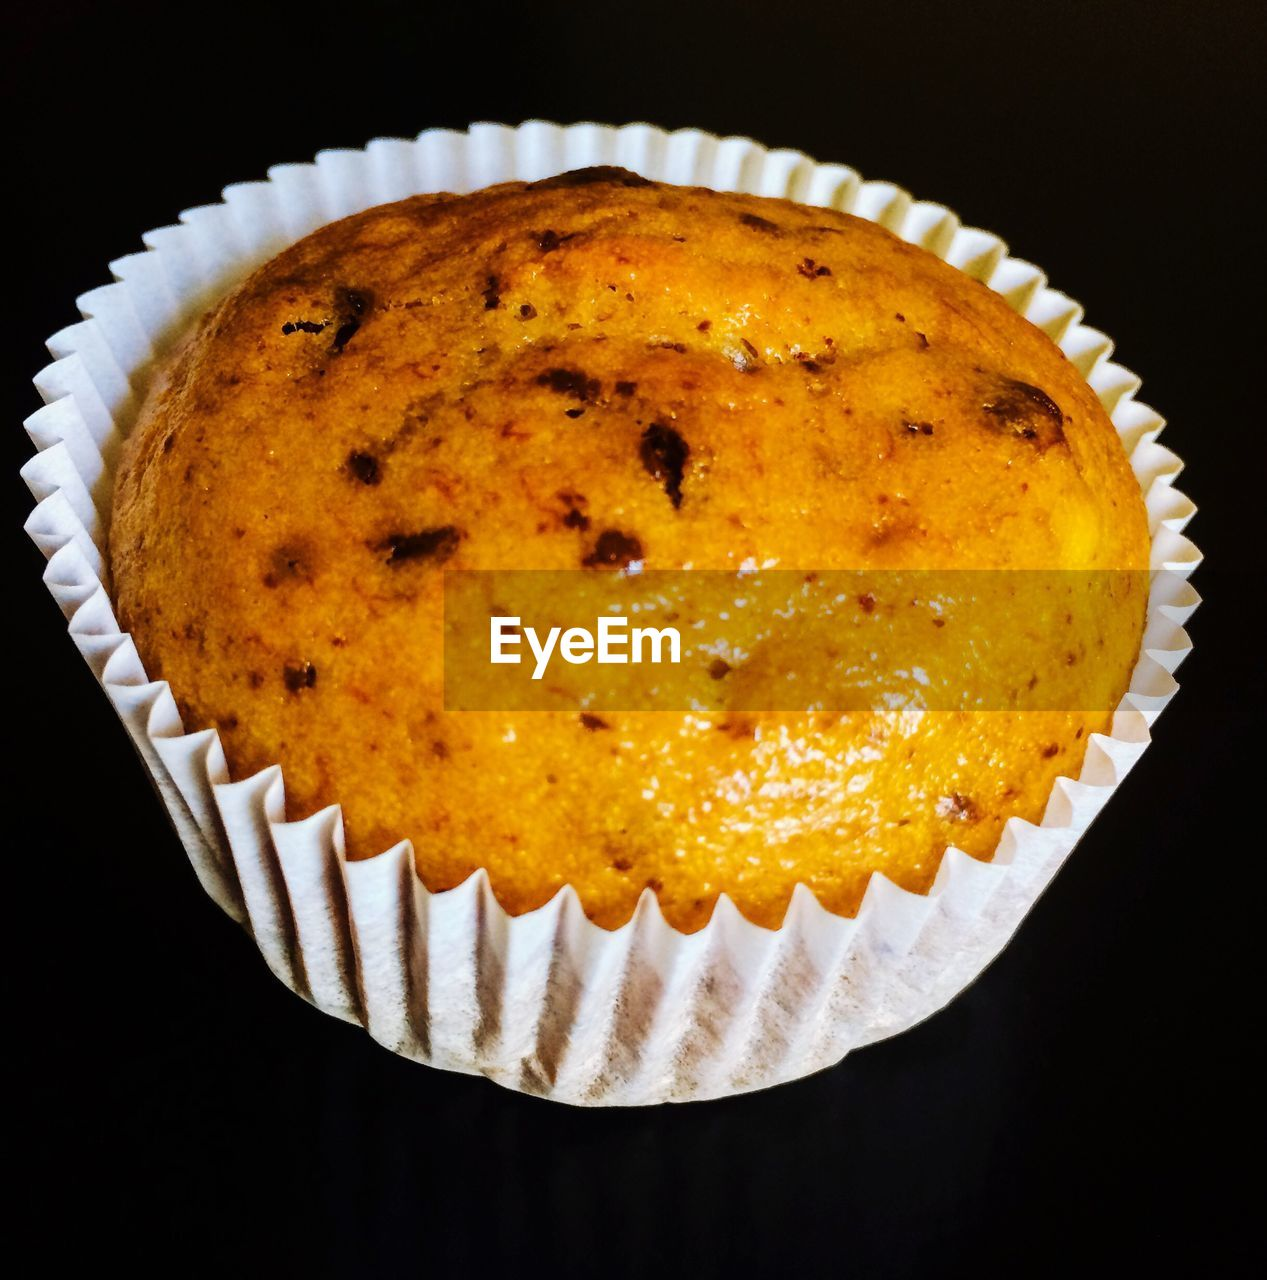 food and drink, food, indoors, sweet food, dessert, indulgence, cupcake, freshness, sweet, close-up, no people, still life, ready-to-eat, baked, black background, unhealthy eating, muffin, temptation, studio shot, cupcake holder, tart - dessert, snack, paper plate